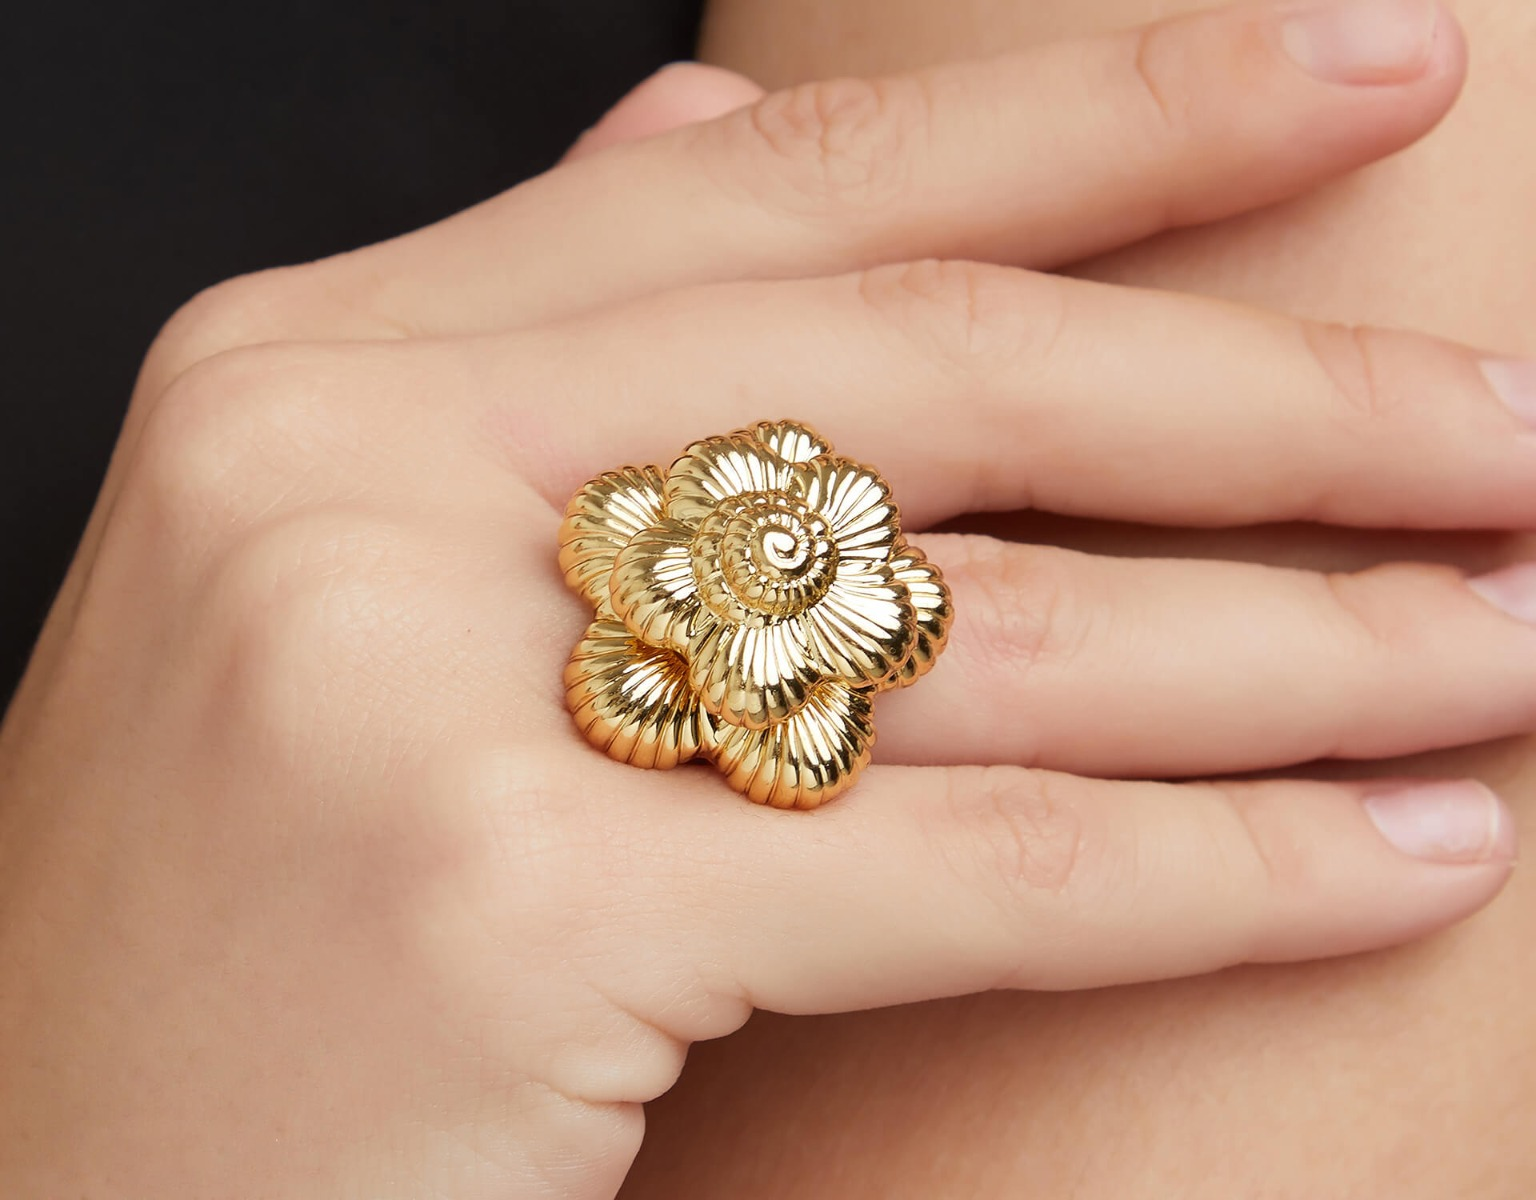 The Gold Bloom Ring